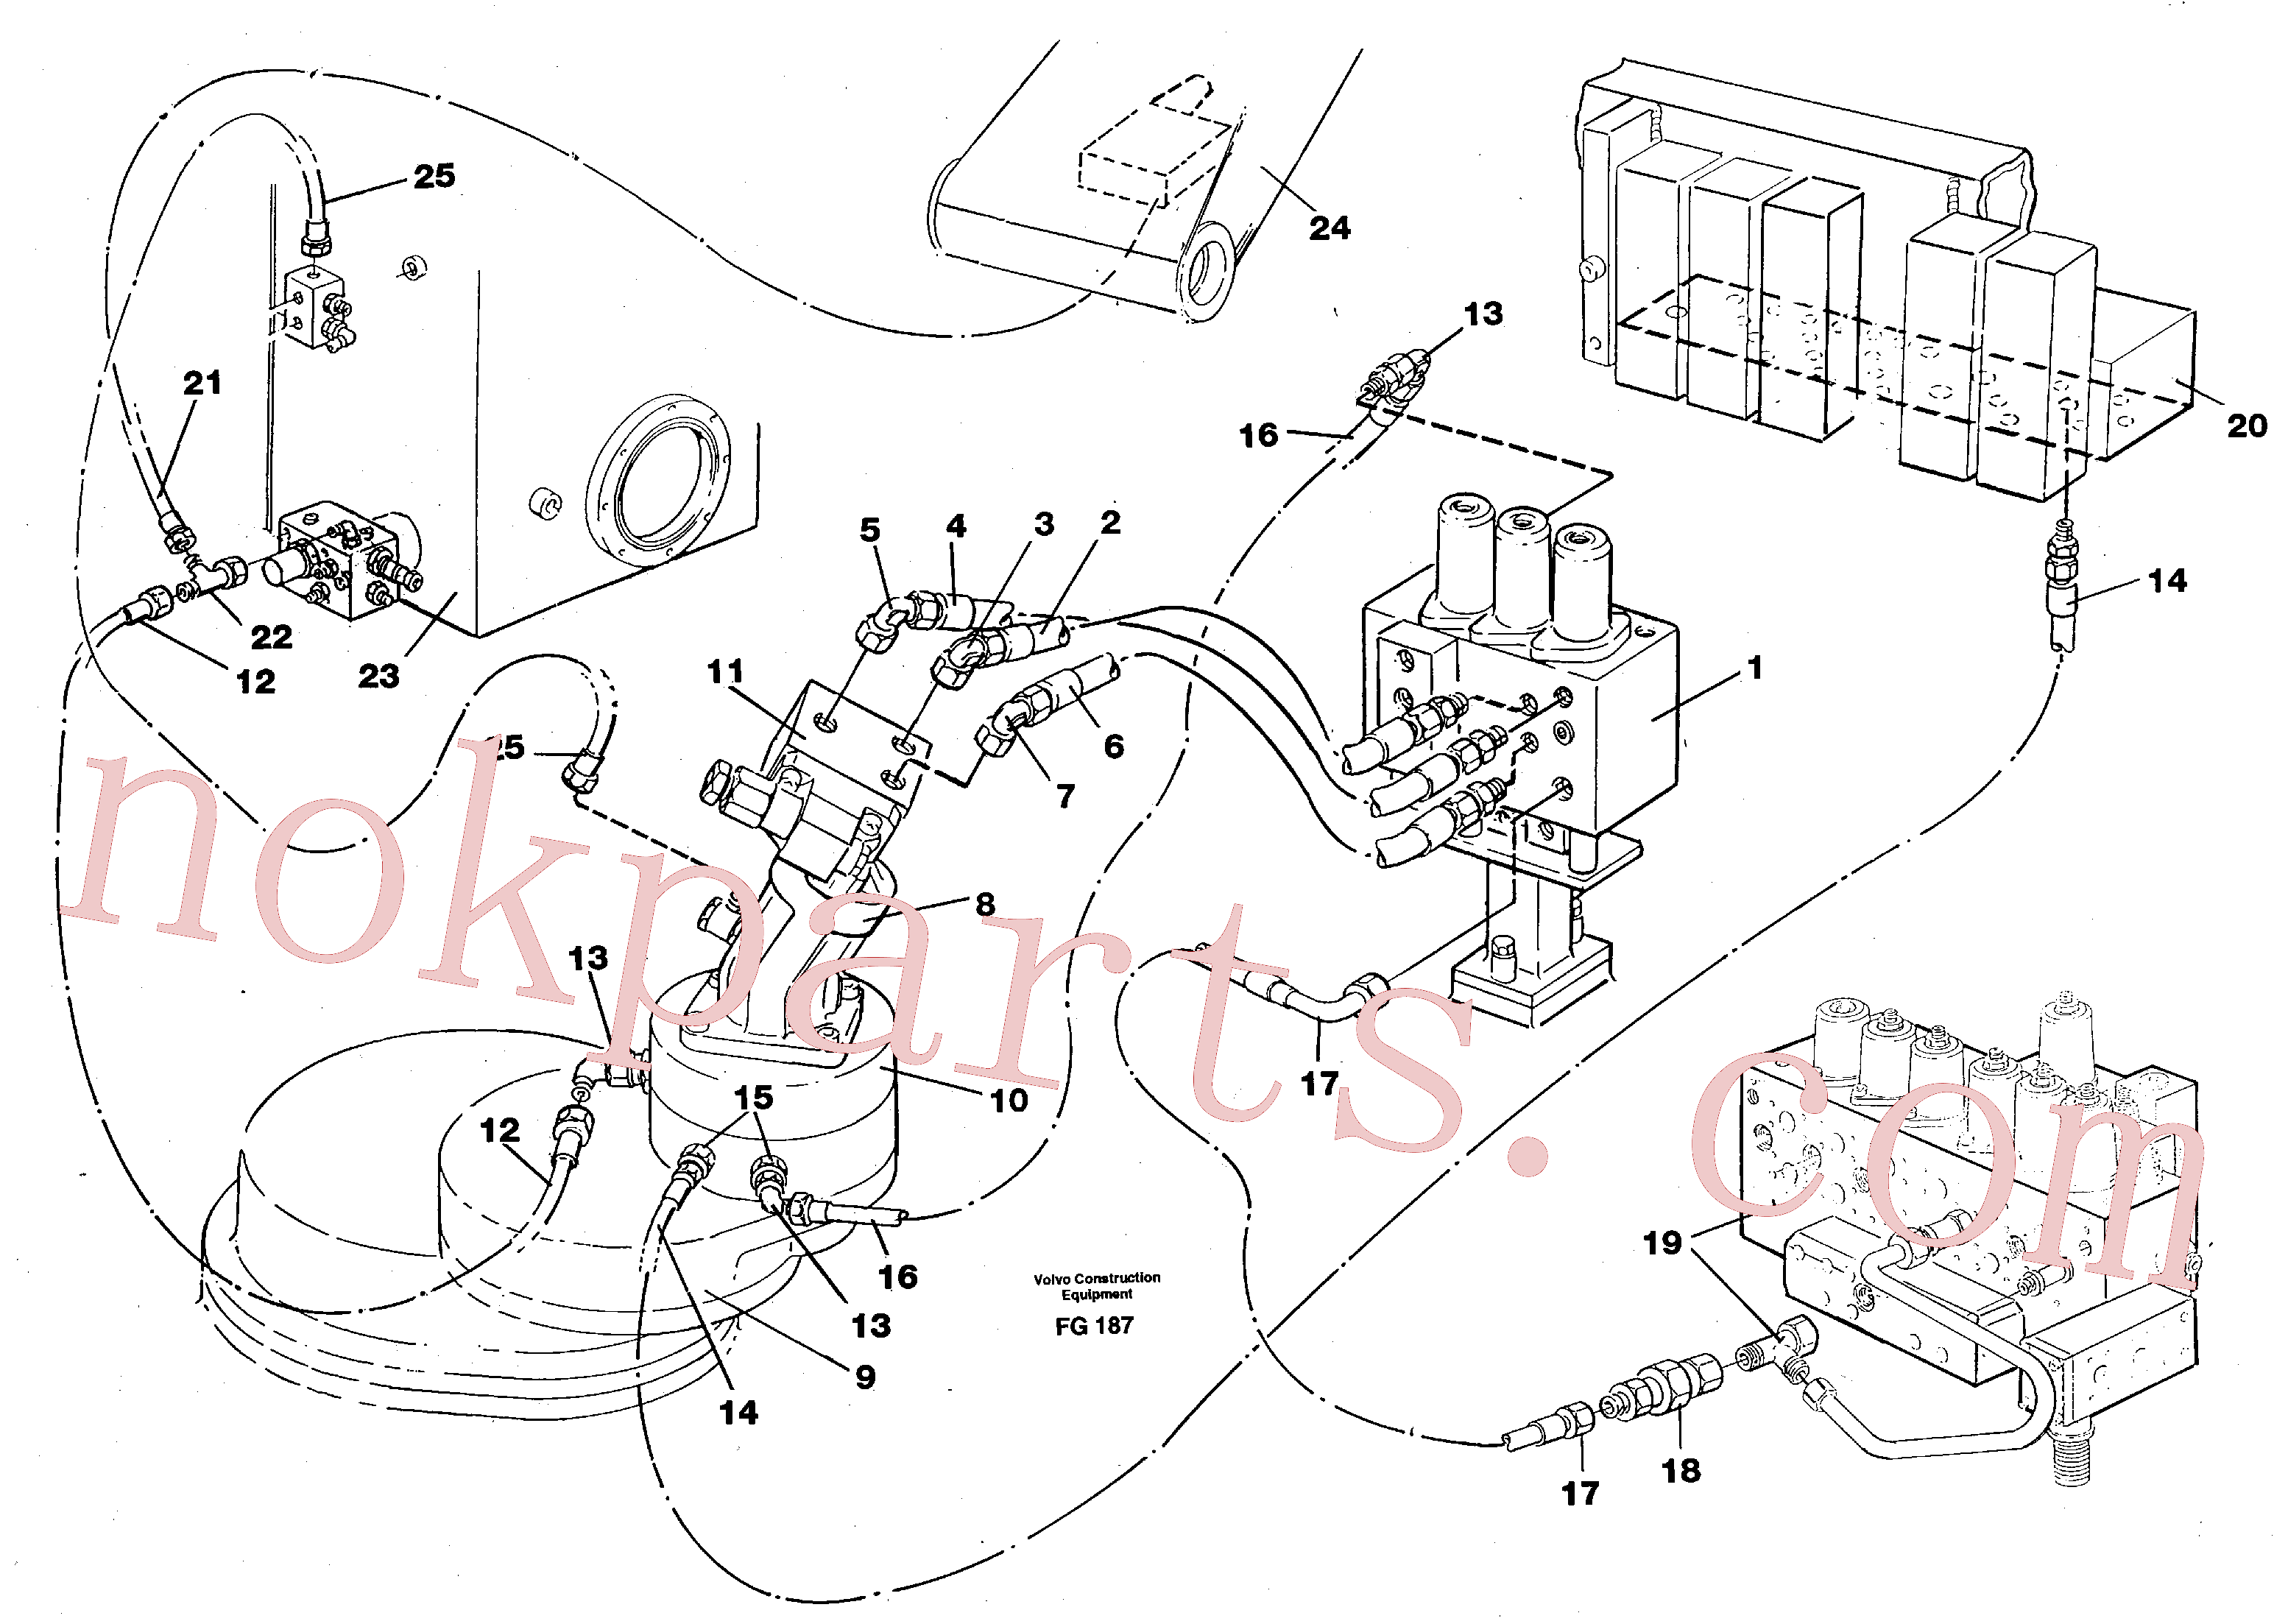 VOE14263247 for Volvo Boom swing system(FG187 assembly)